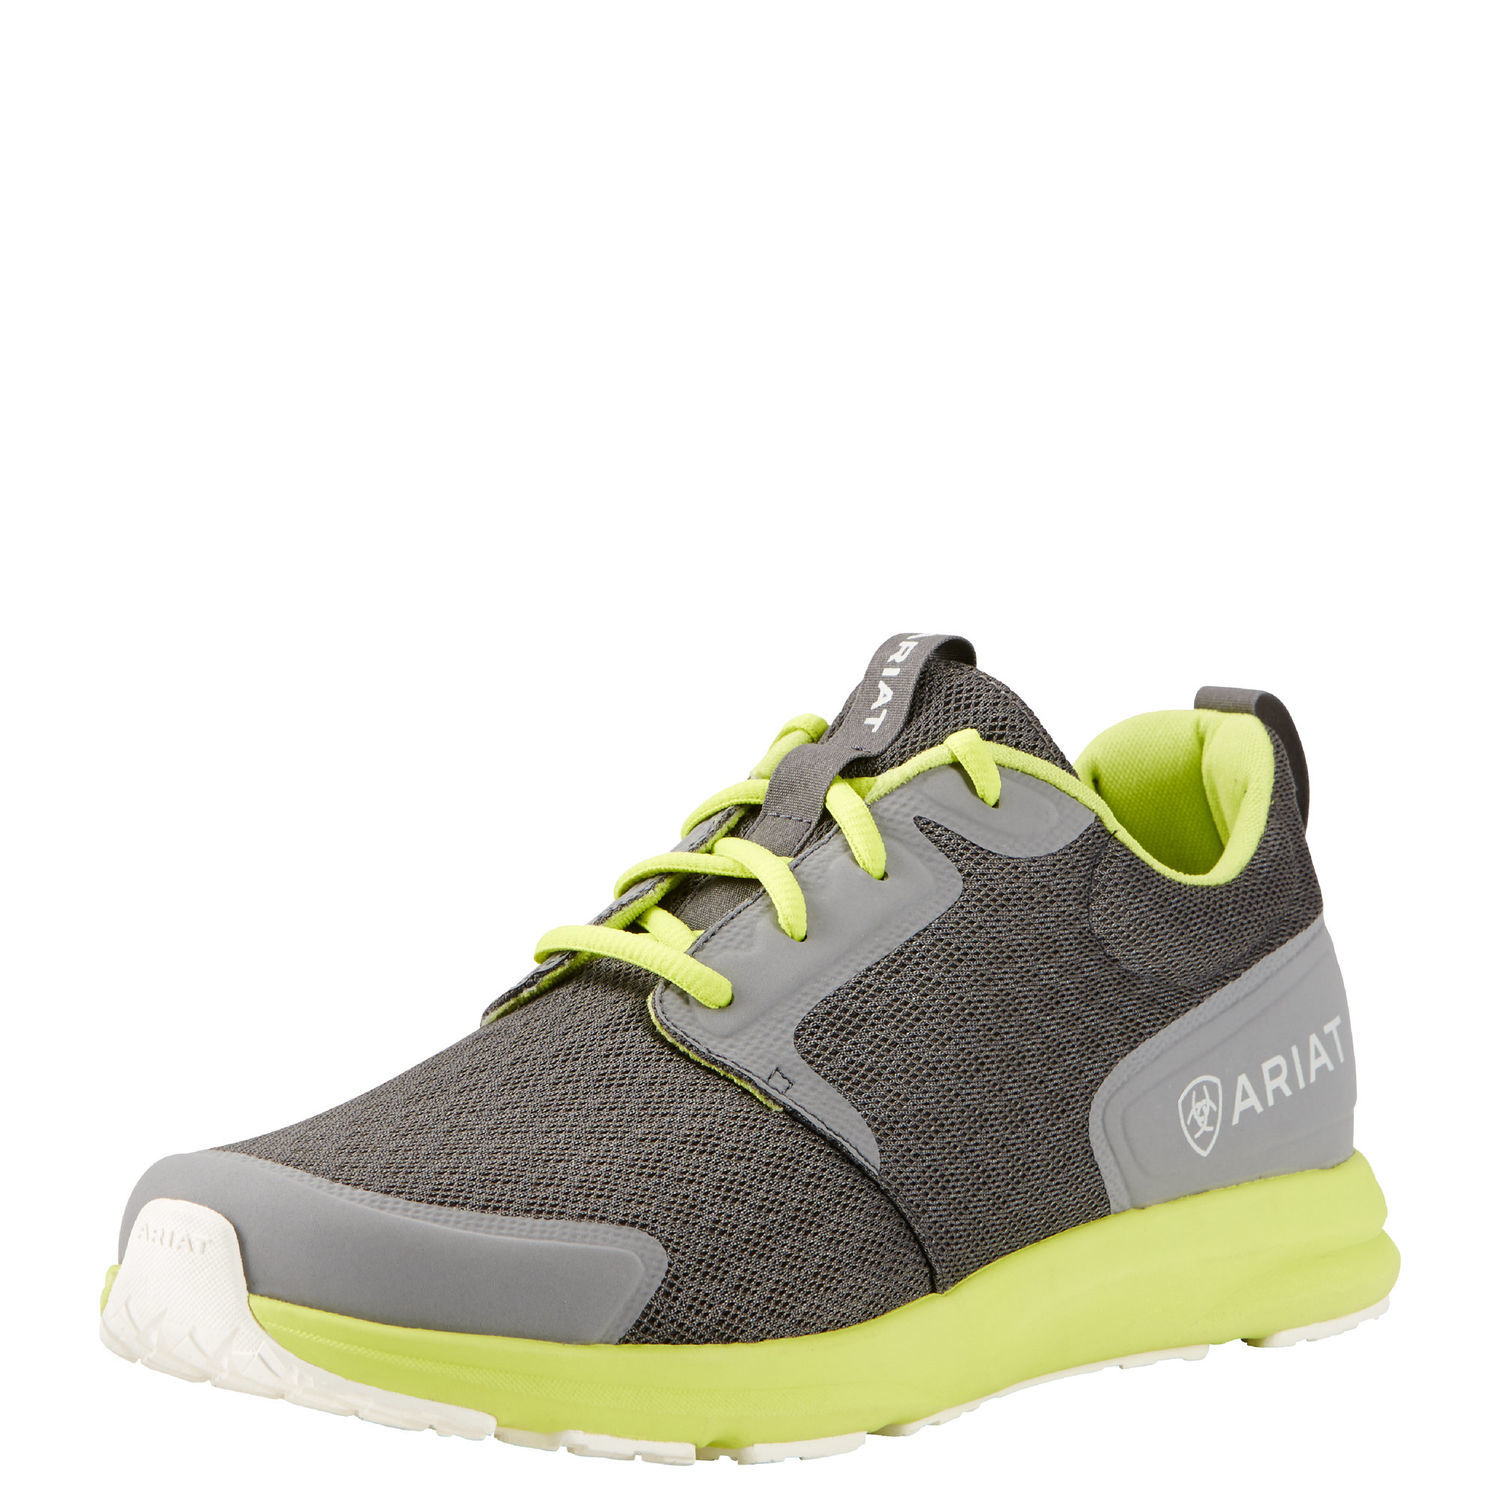 Ariat Fuse Round Toe Synthetic Running Shoe by Ariat